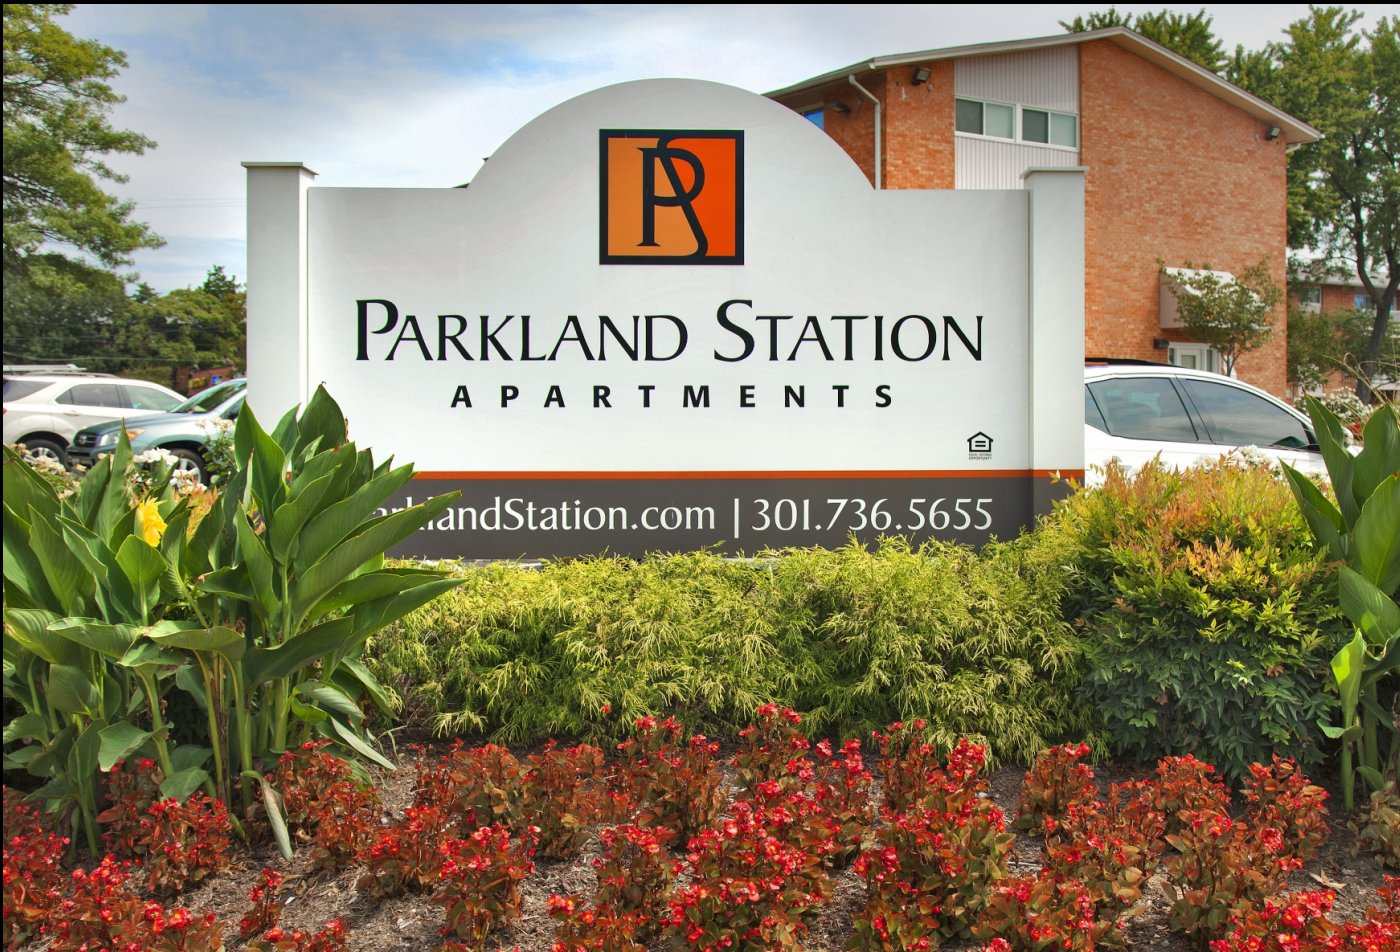 Parkland Station Apartments